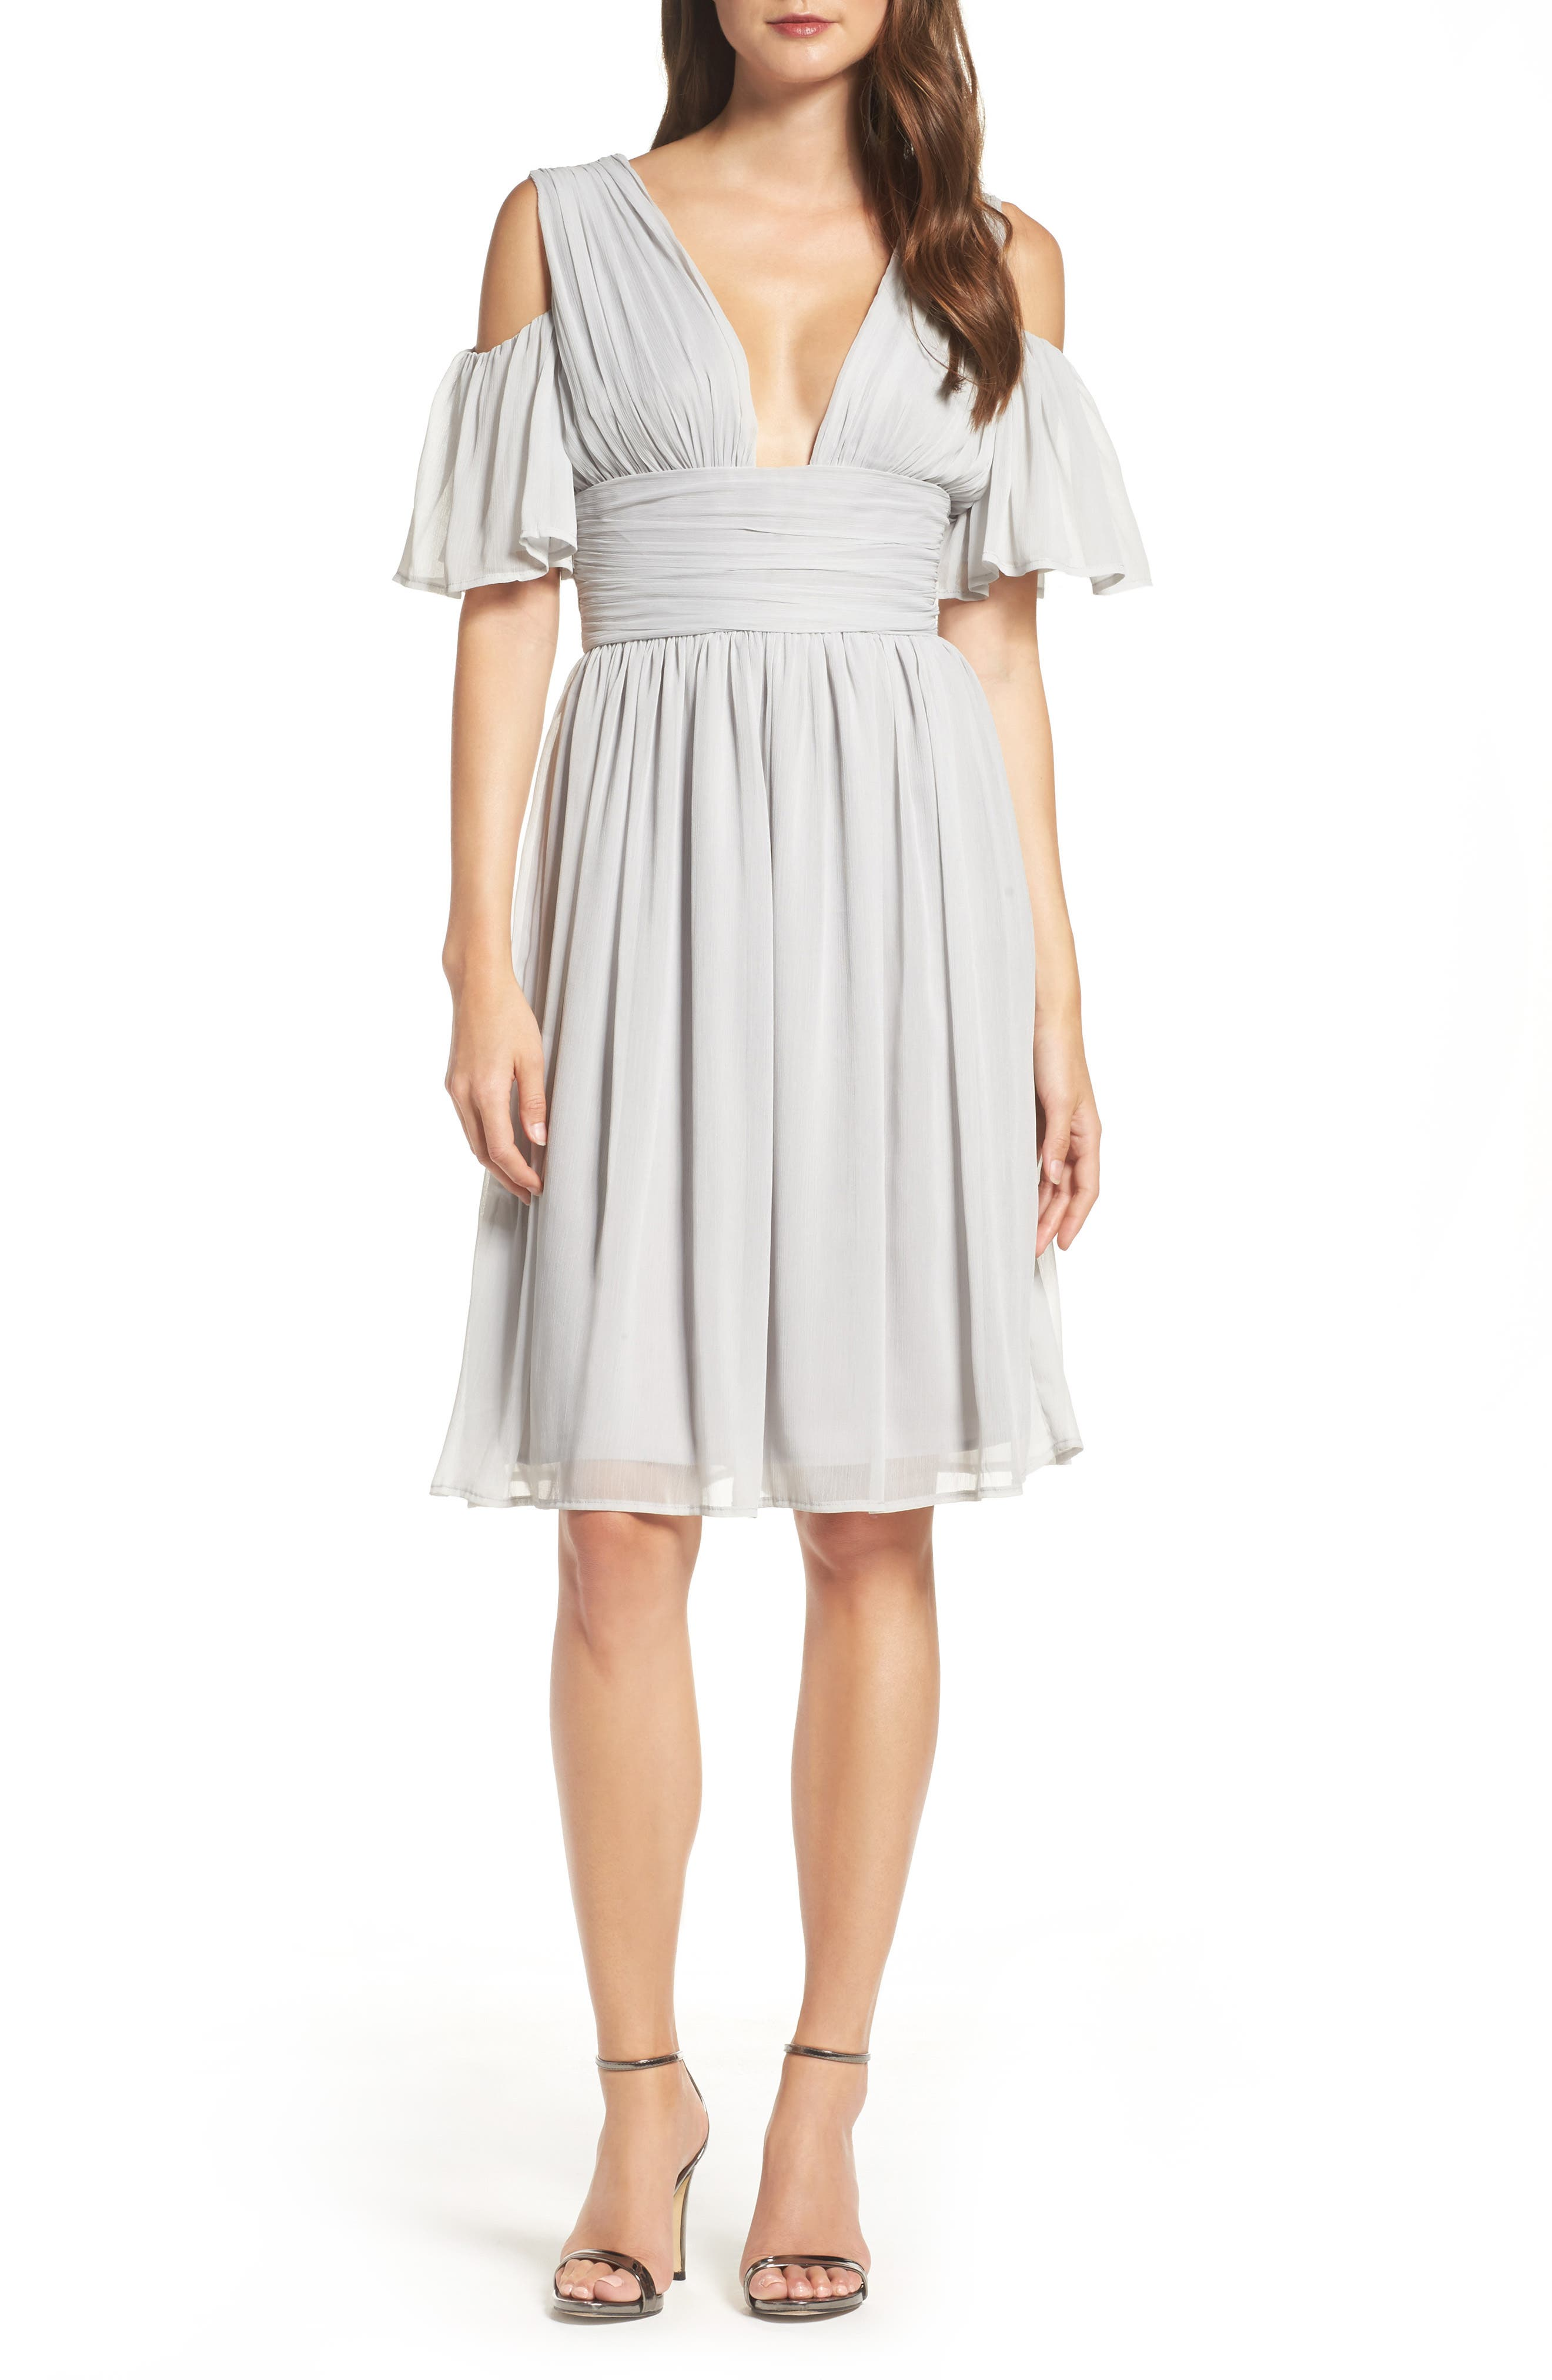 Alternate Image 1 Selected - French Connection Chiffon Fit & Flare Dress